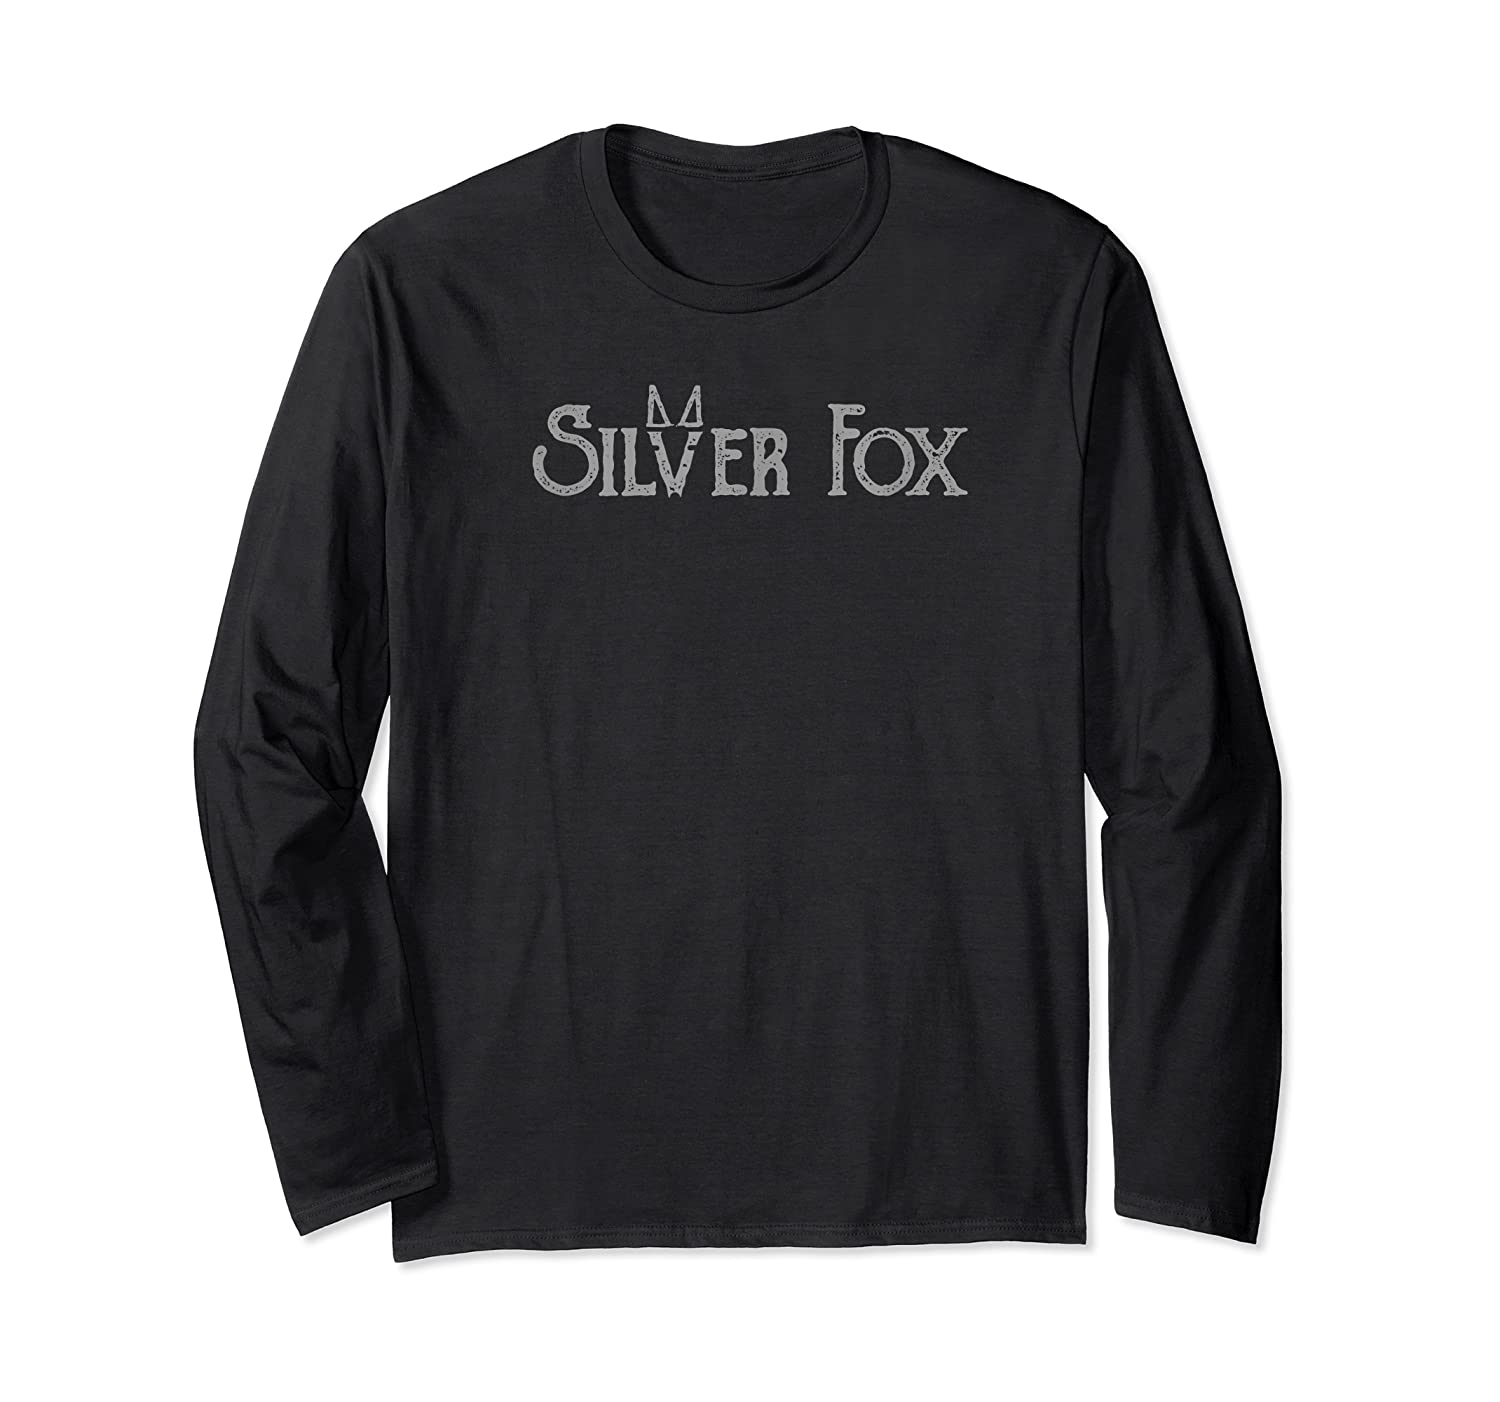 Silver Fox T Shirt For Sexy Silver Foxes, Baby Boomers Long Sleeve T-shirt